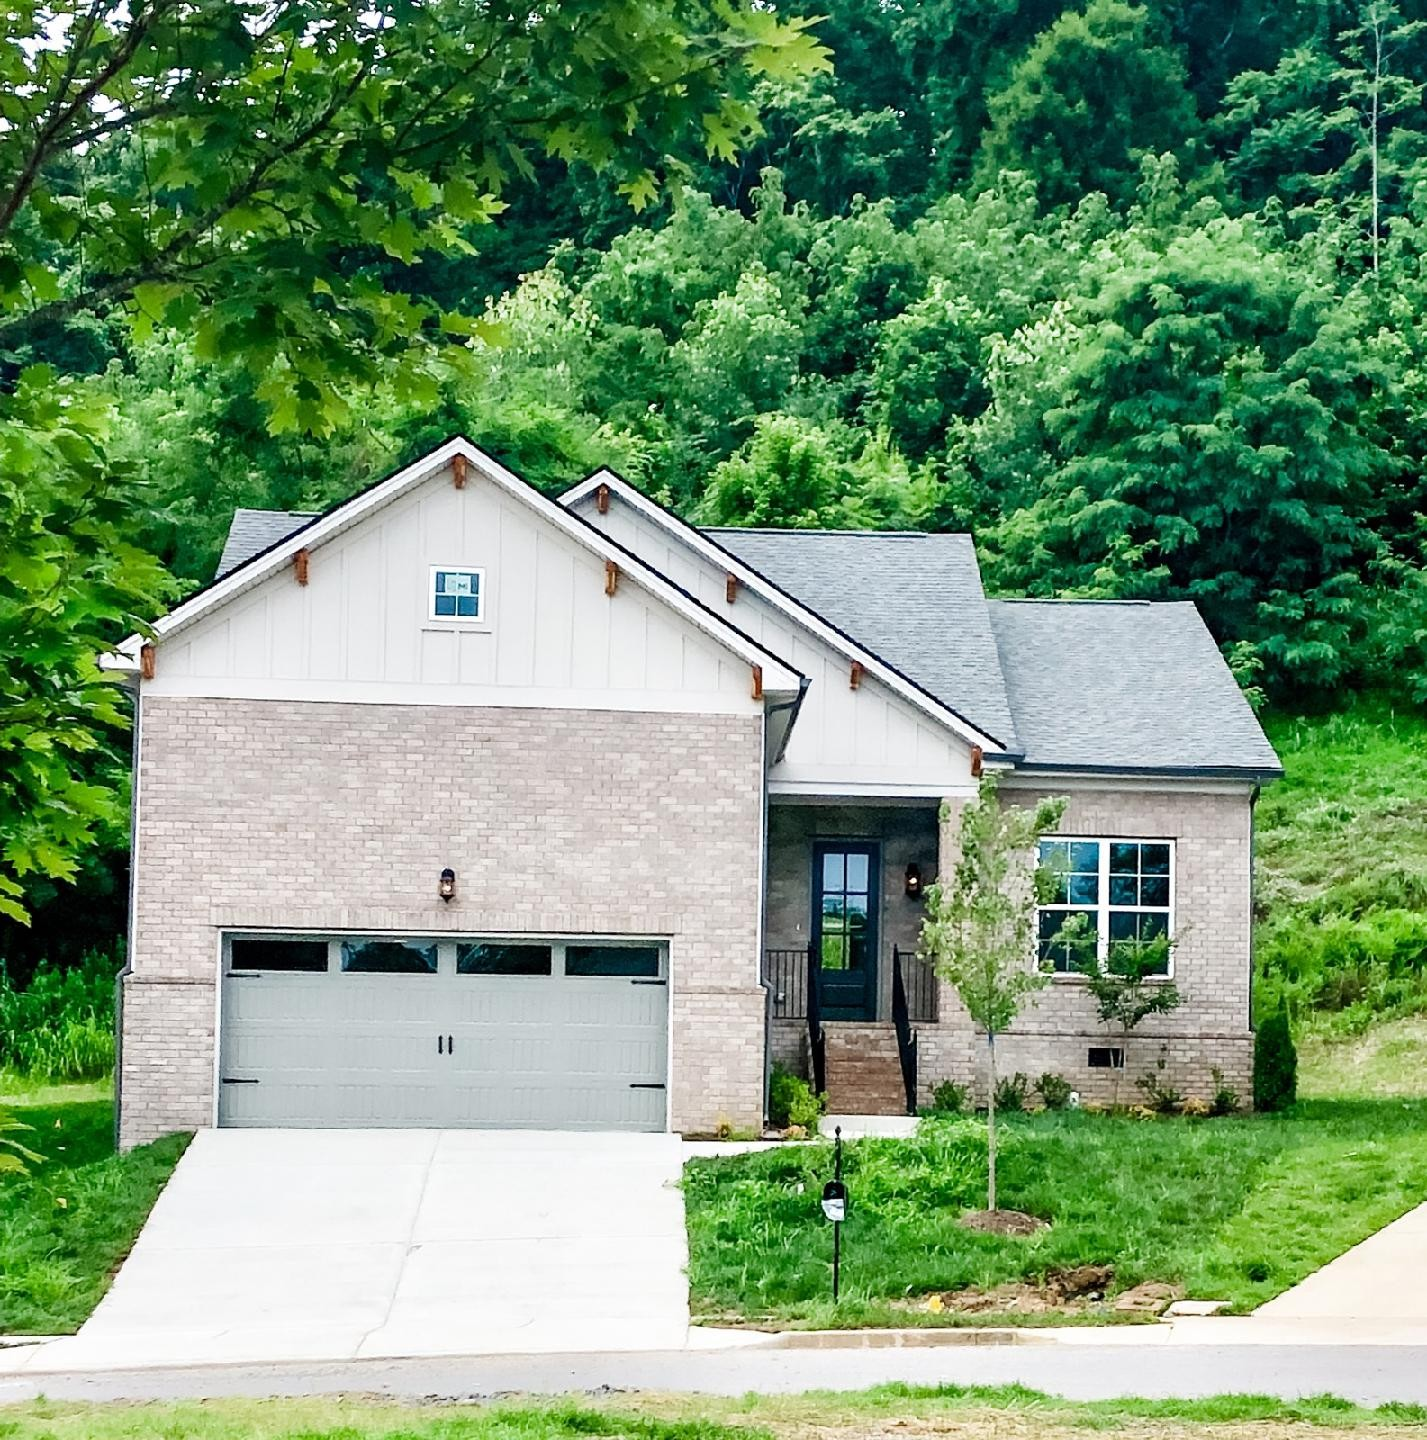 1 year old house, still like new! In the much-desired Avondale subdivision-Master bedroom both down and up! Alarm system with Smart Home Technology! Custom laundry room storage and mud room area at garage entry.